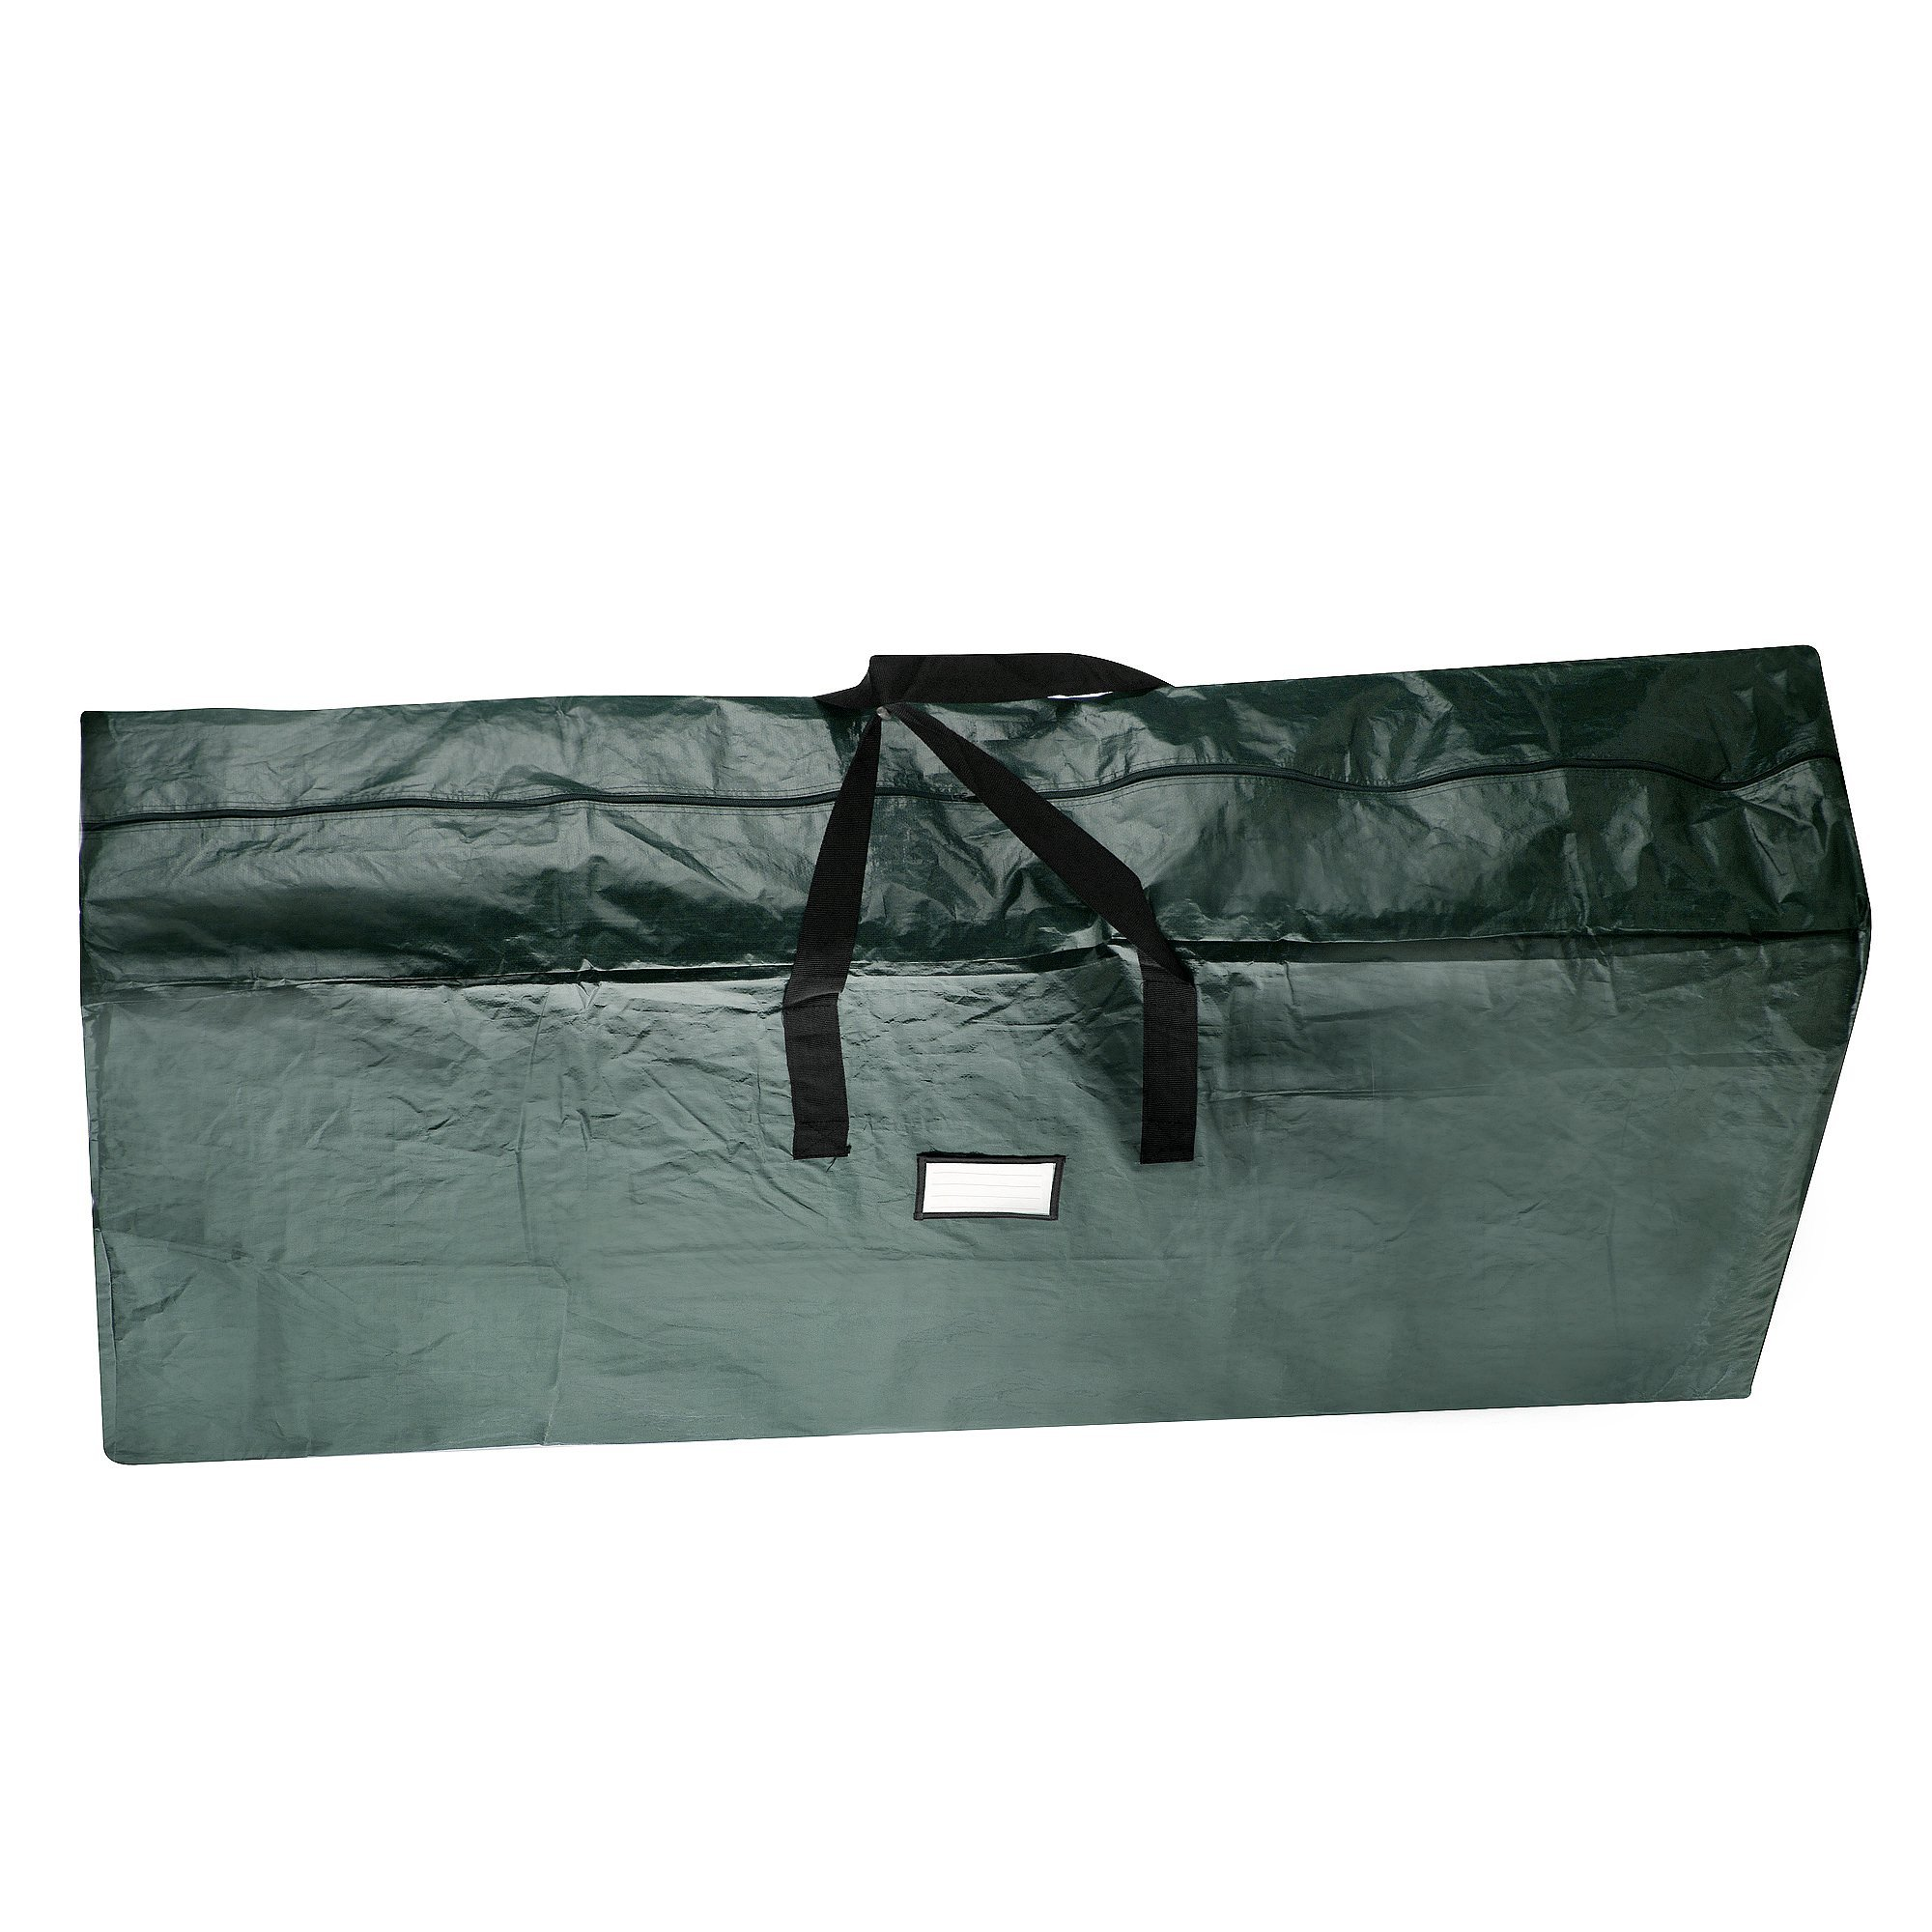 Elf Stor Premium Green Christmas Tree Bag Holiday Extra Large for up to 9' Tree Storage by Elf Stor (Image #4)